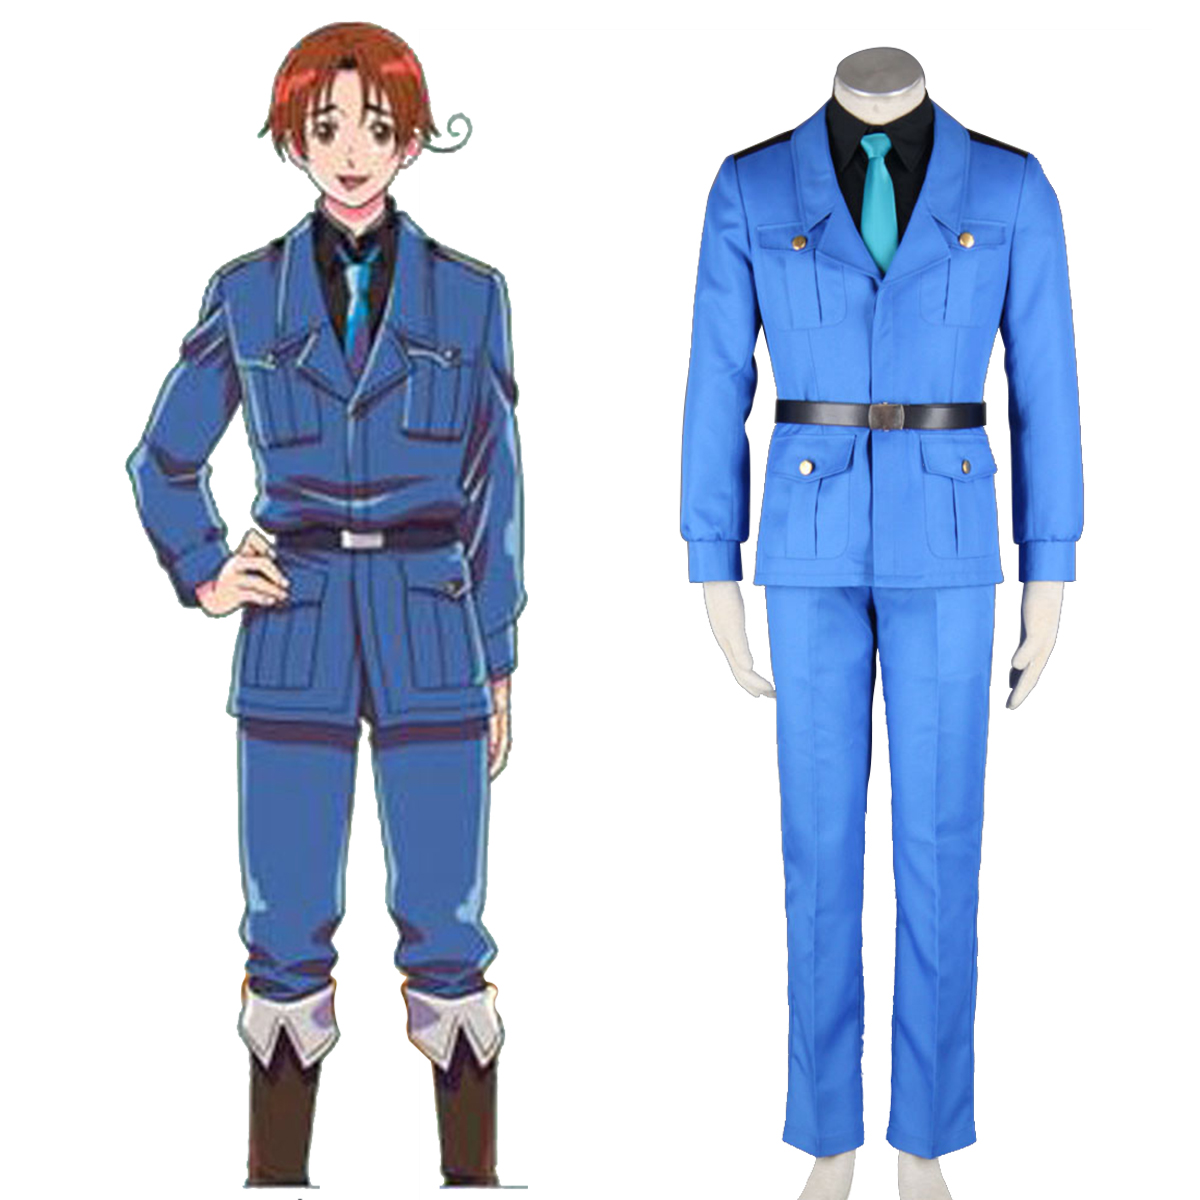 Axis Powers Hetalia APH North Italy Feliciano Vargas 3 Anime Cosplay Costumes Outfit